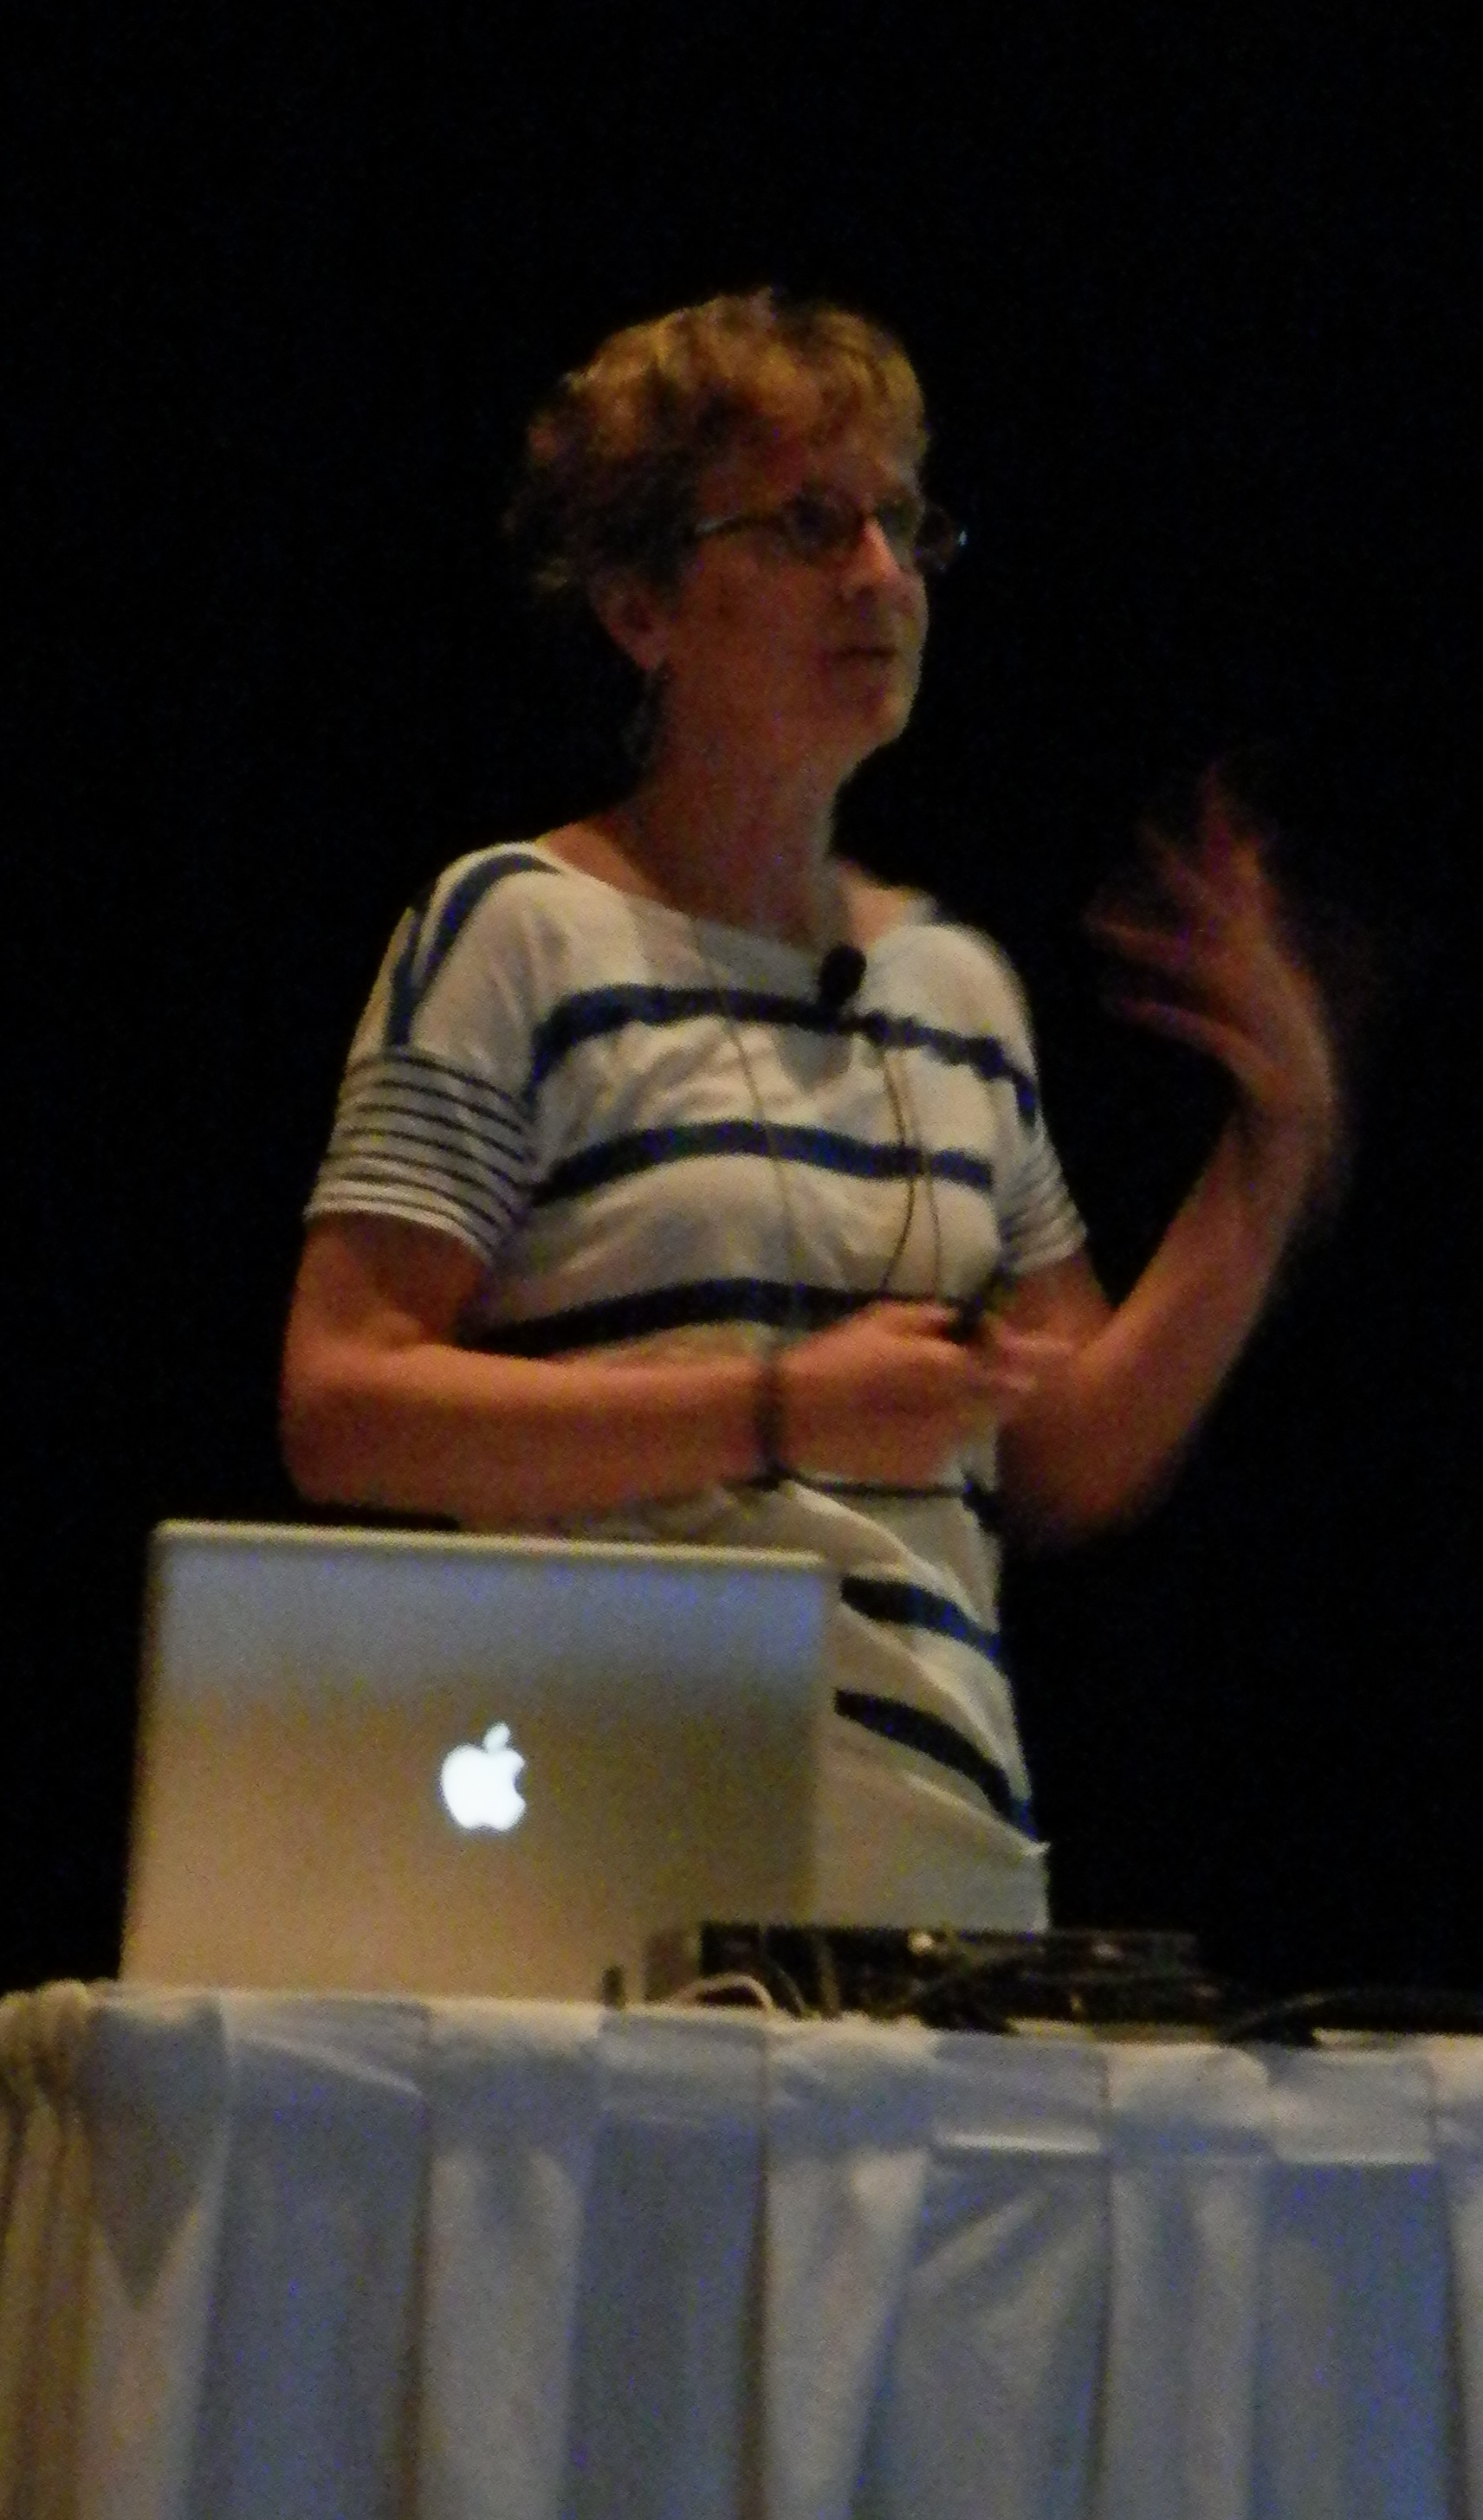 Janet Rossant's talk cropped